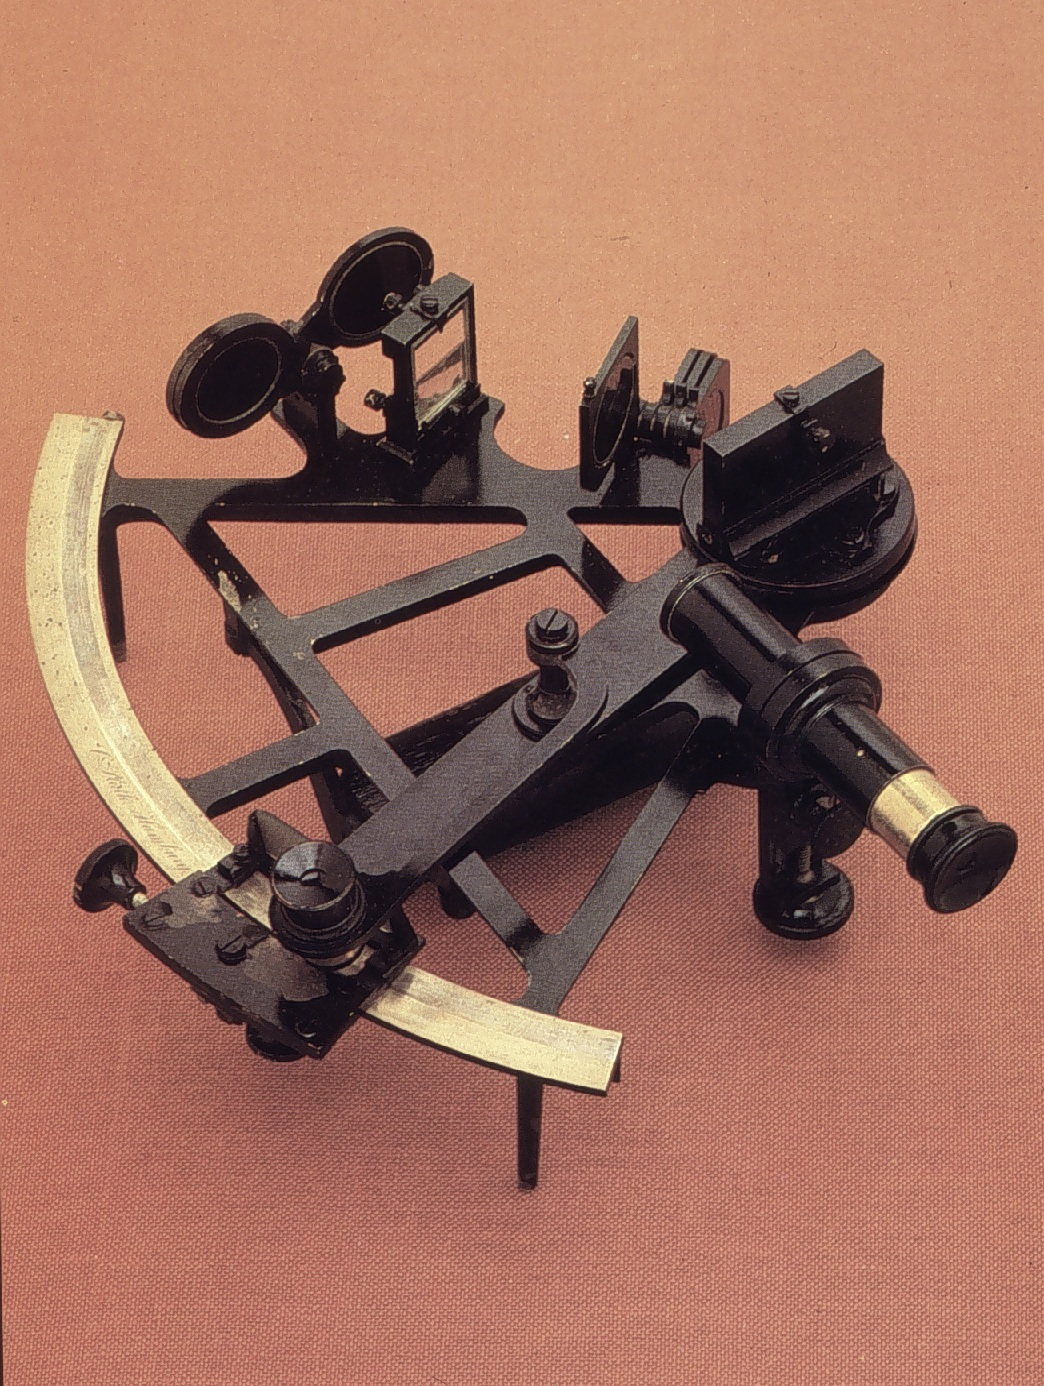 http://upload.wikimedia.org/wikipedia/commons/a/a7/Sextant.jpg